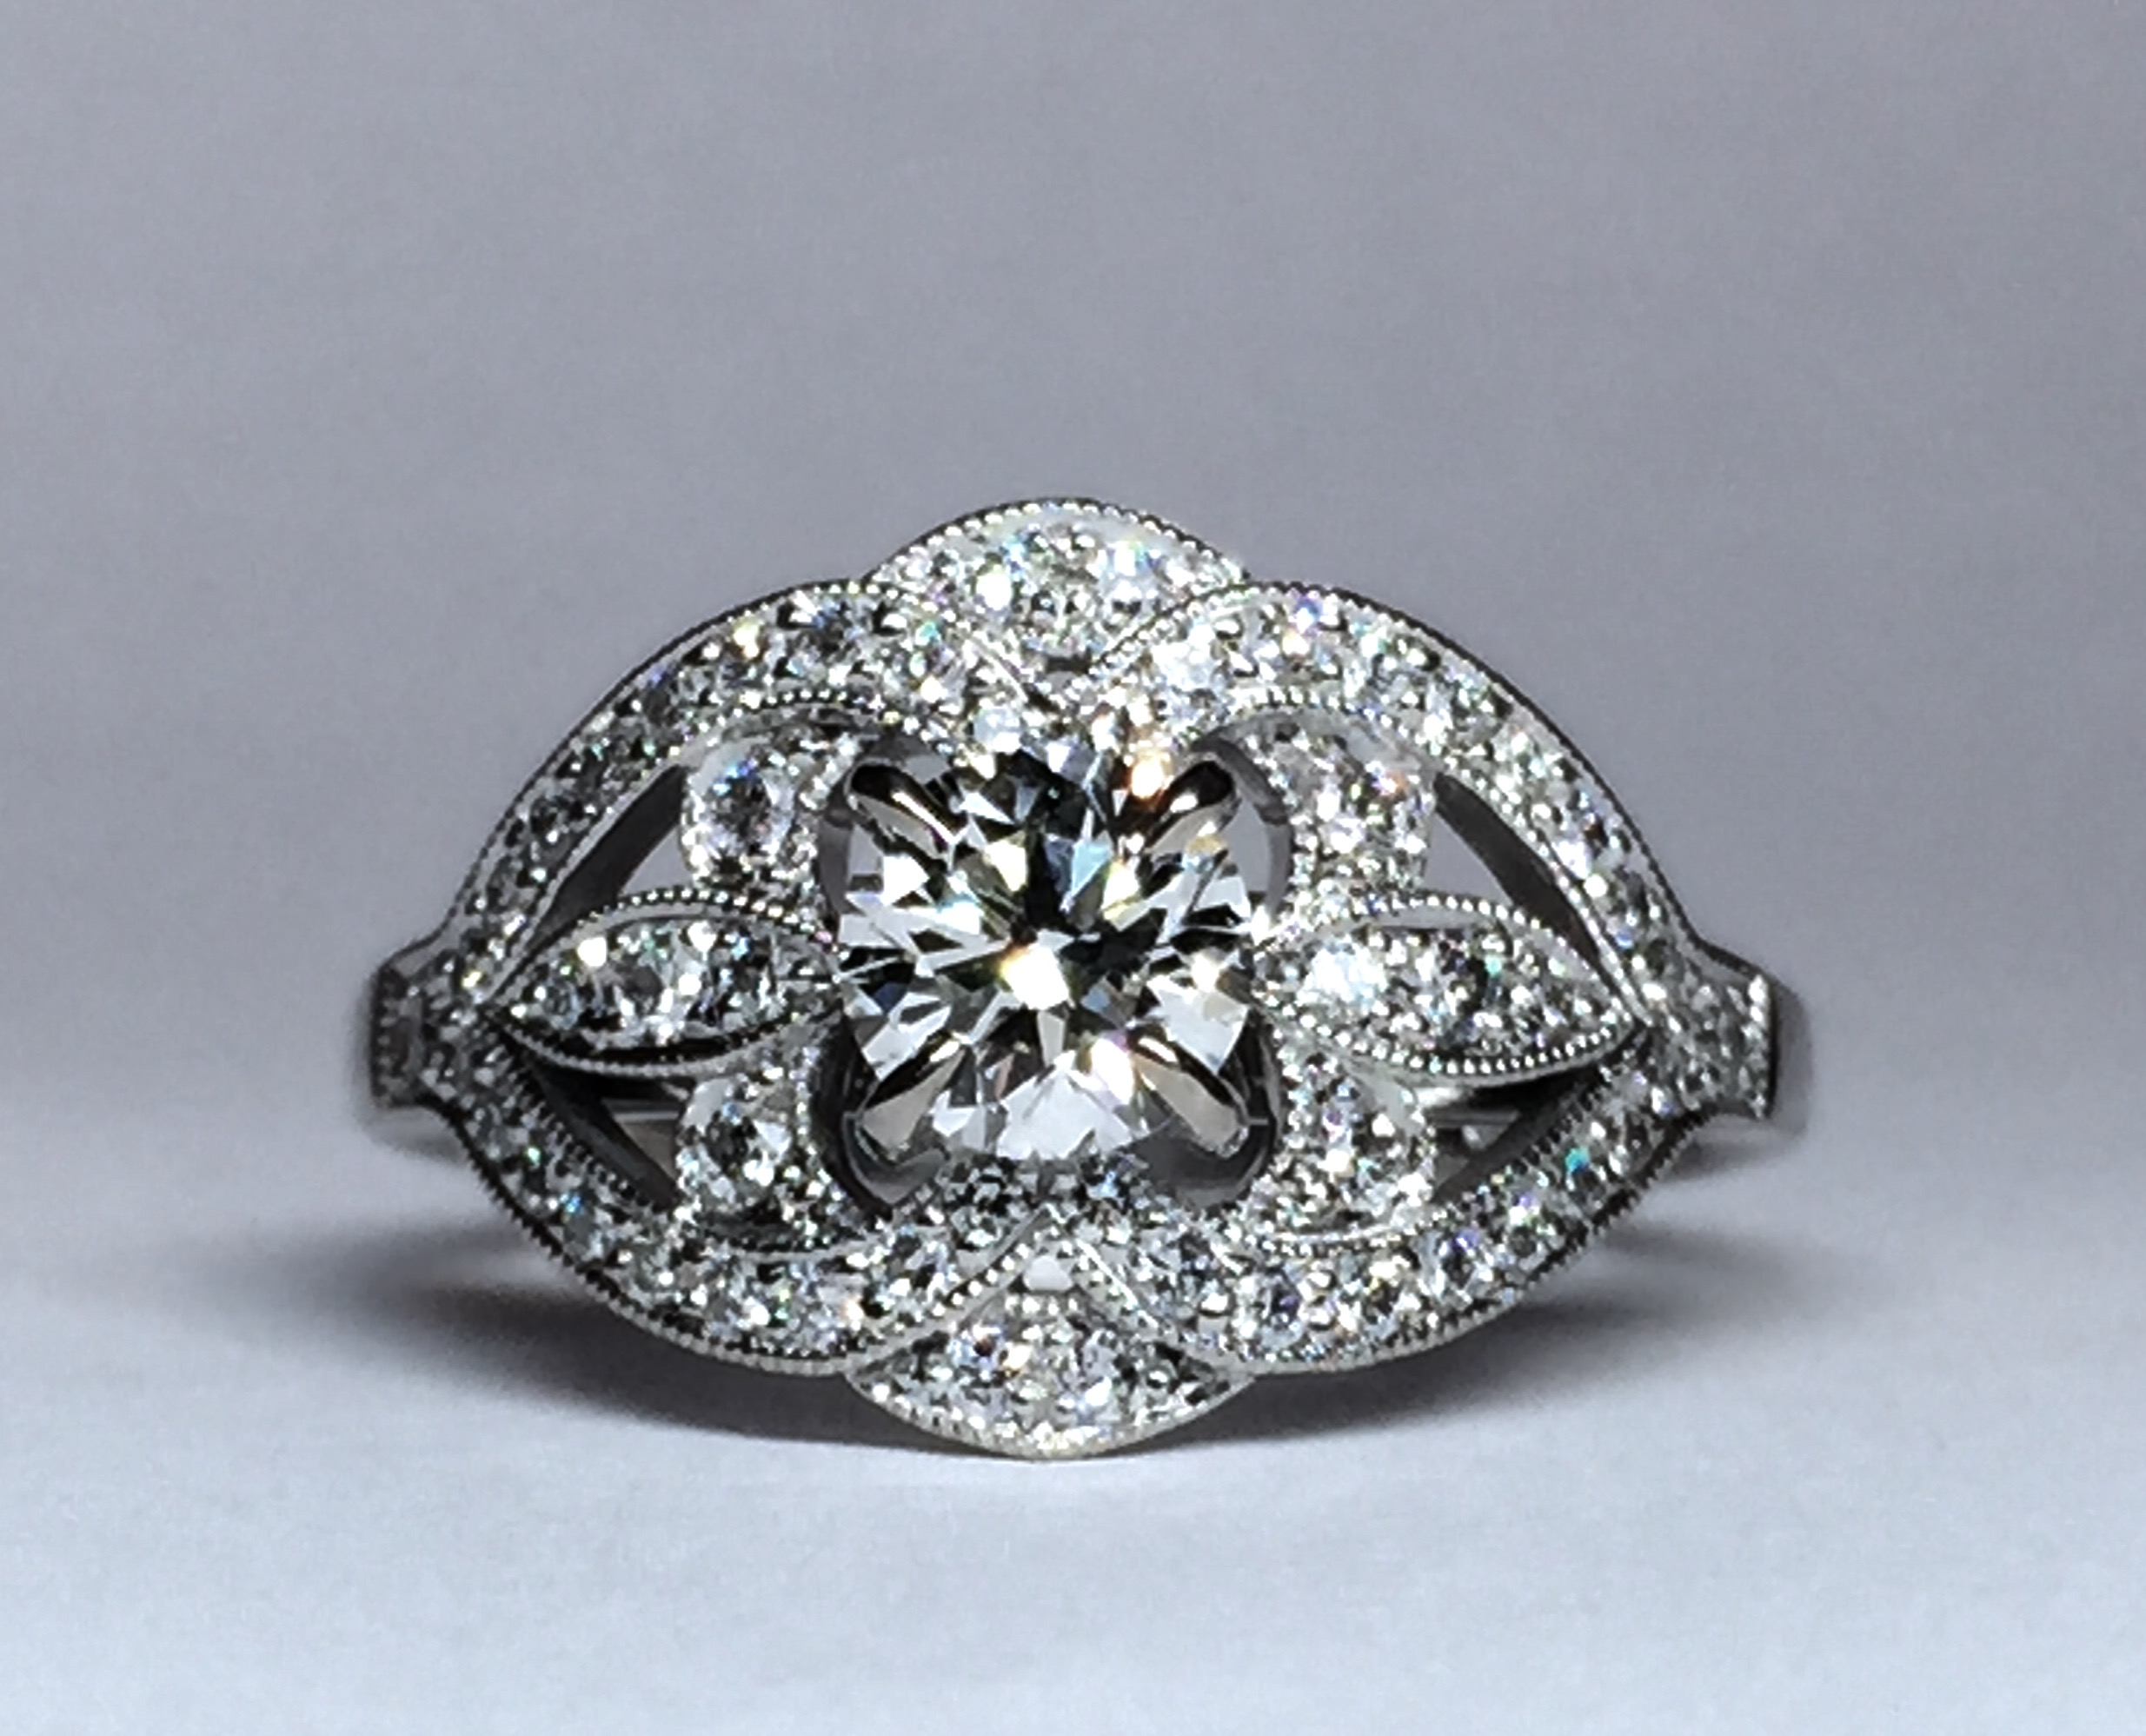 Copy of Pretty early C20th style diamond cluster ring made for customers centre stone. Made in Chichester, England.